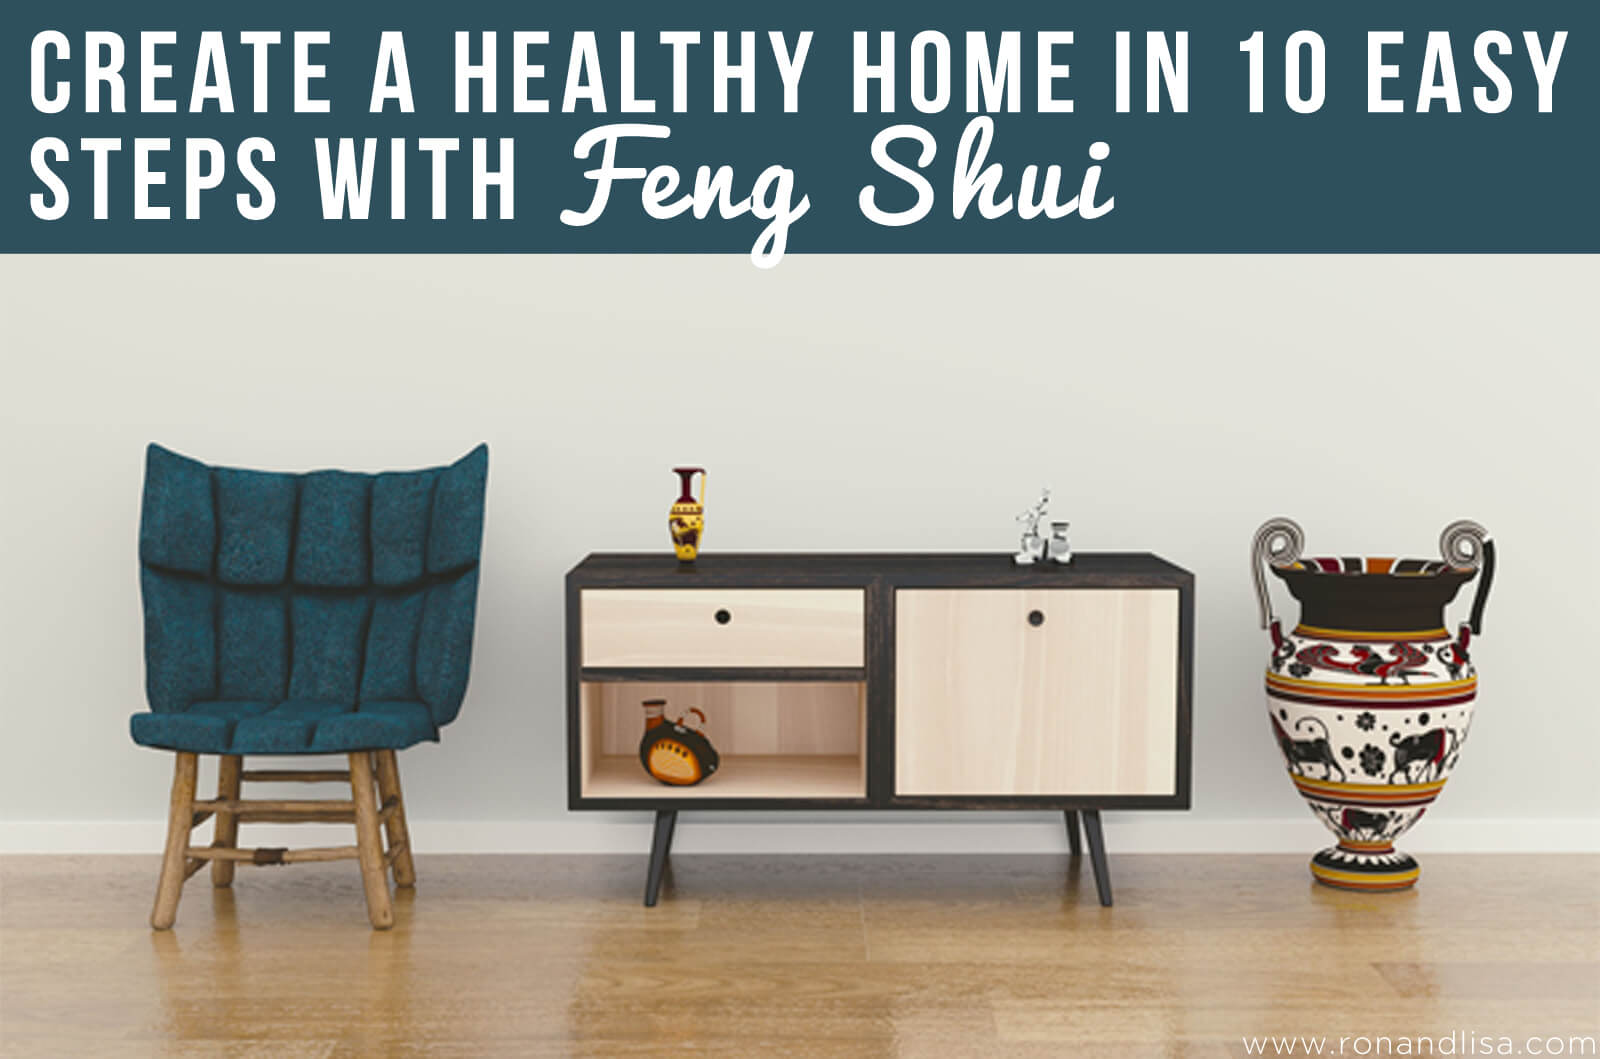 Create a Healthy Home in 10 Easy Steps with Feng Shui